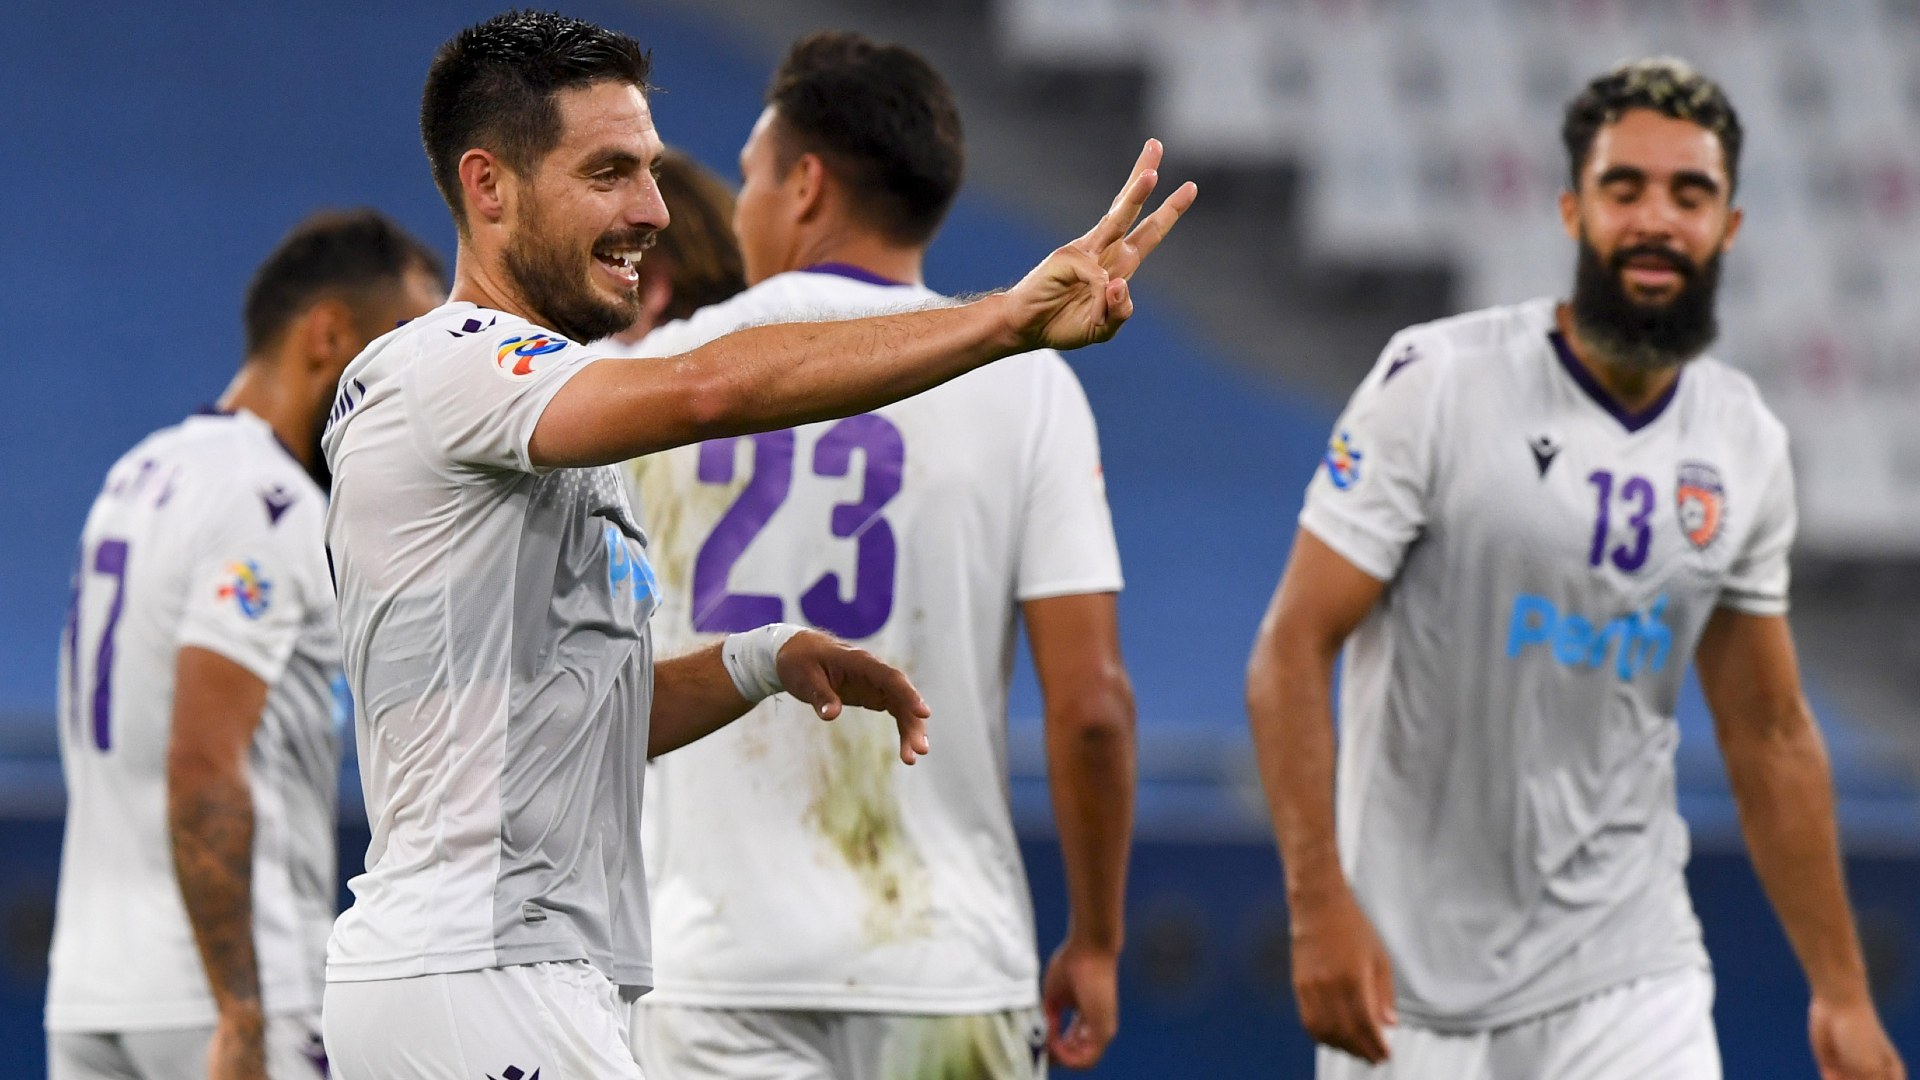 Perth Glory close out Asian Champions League campaign looking for win against FC Tokyo